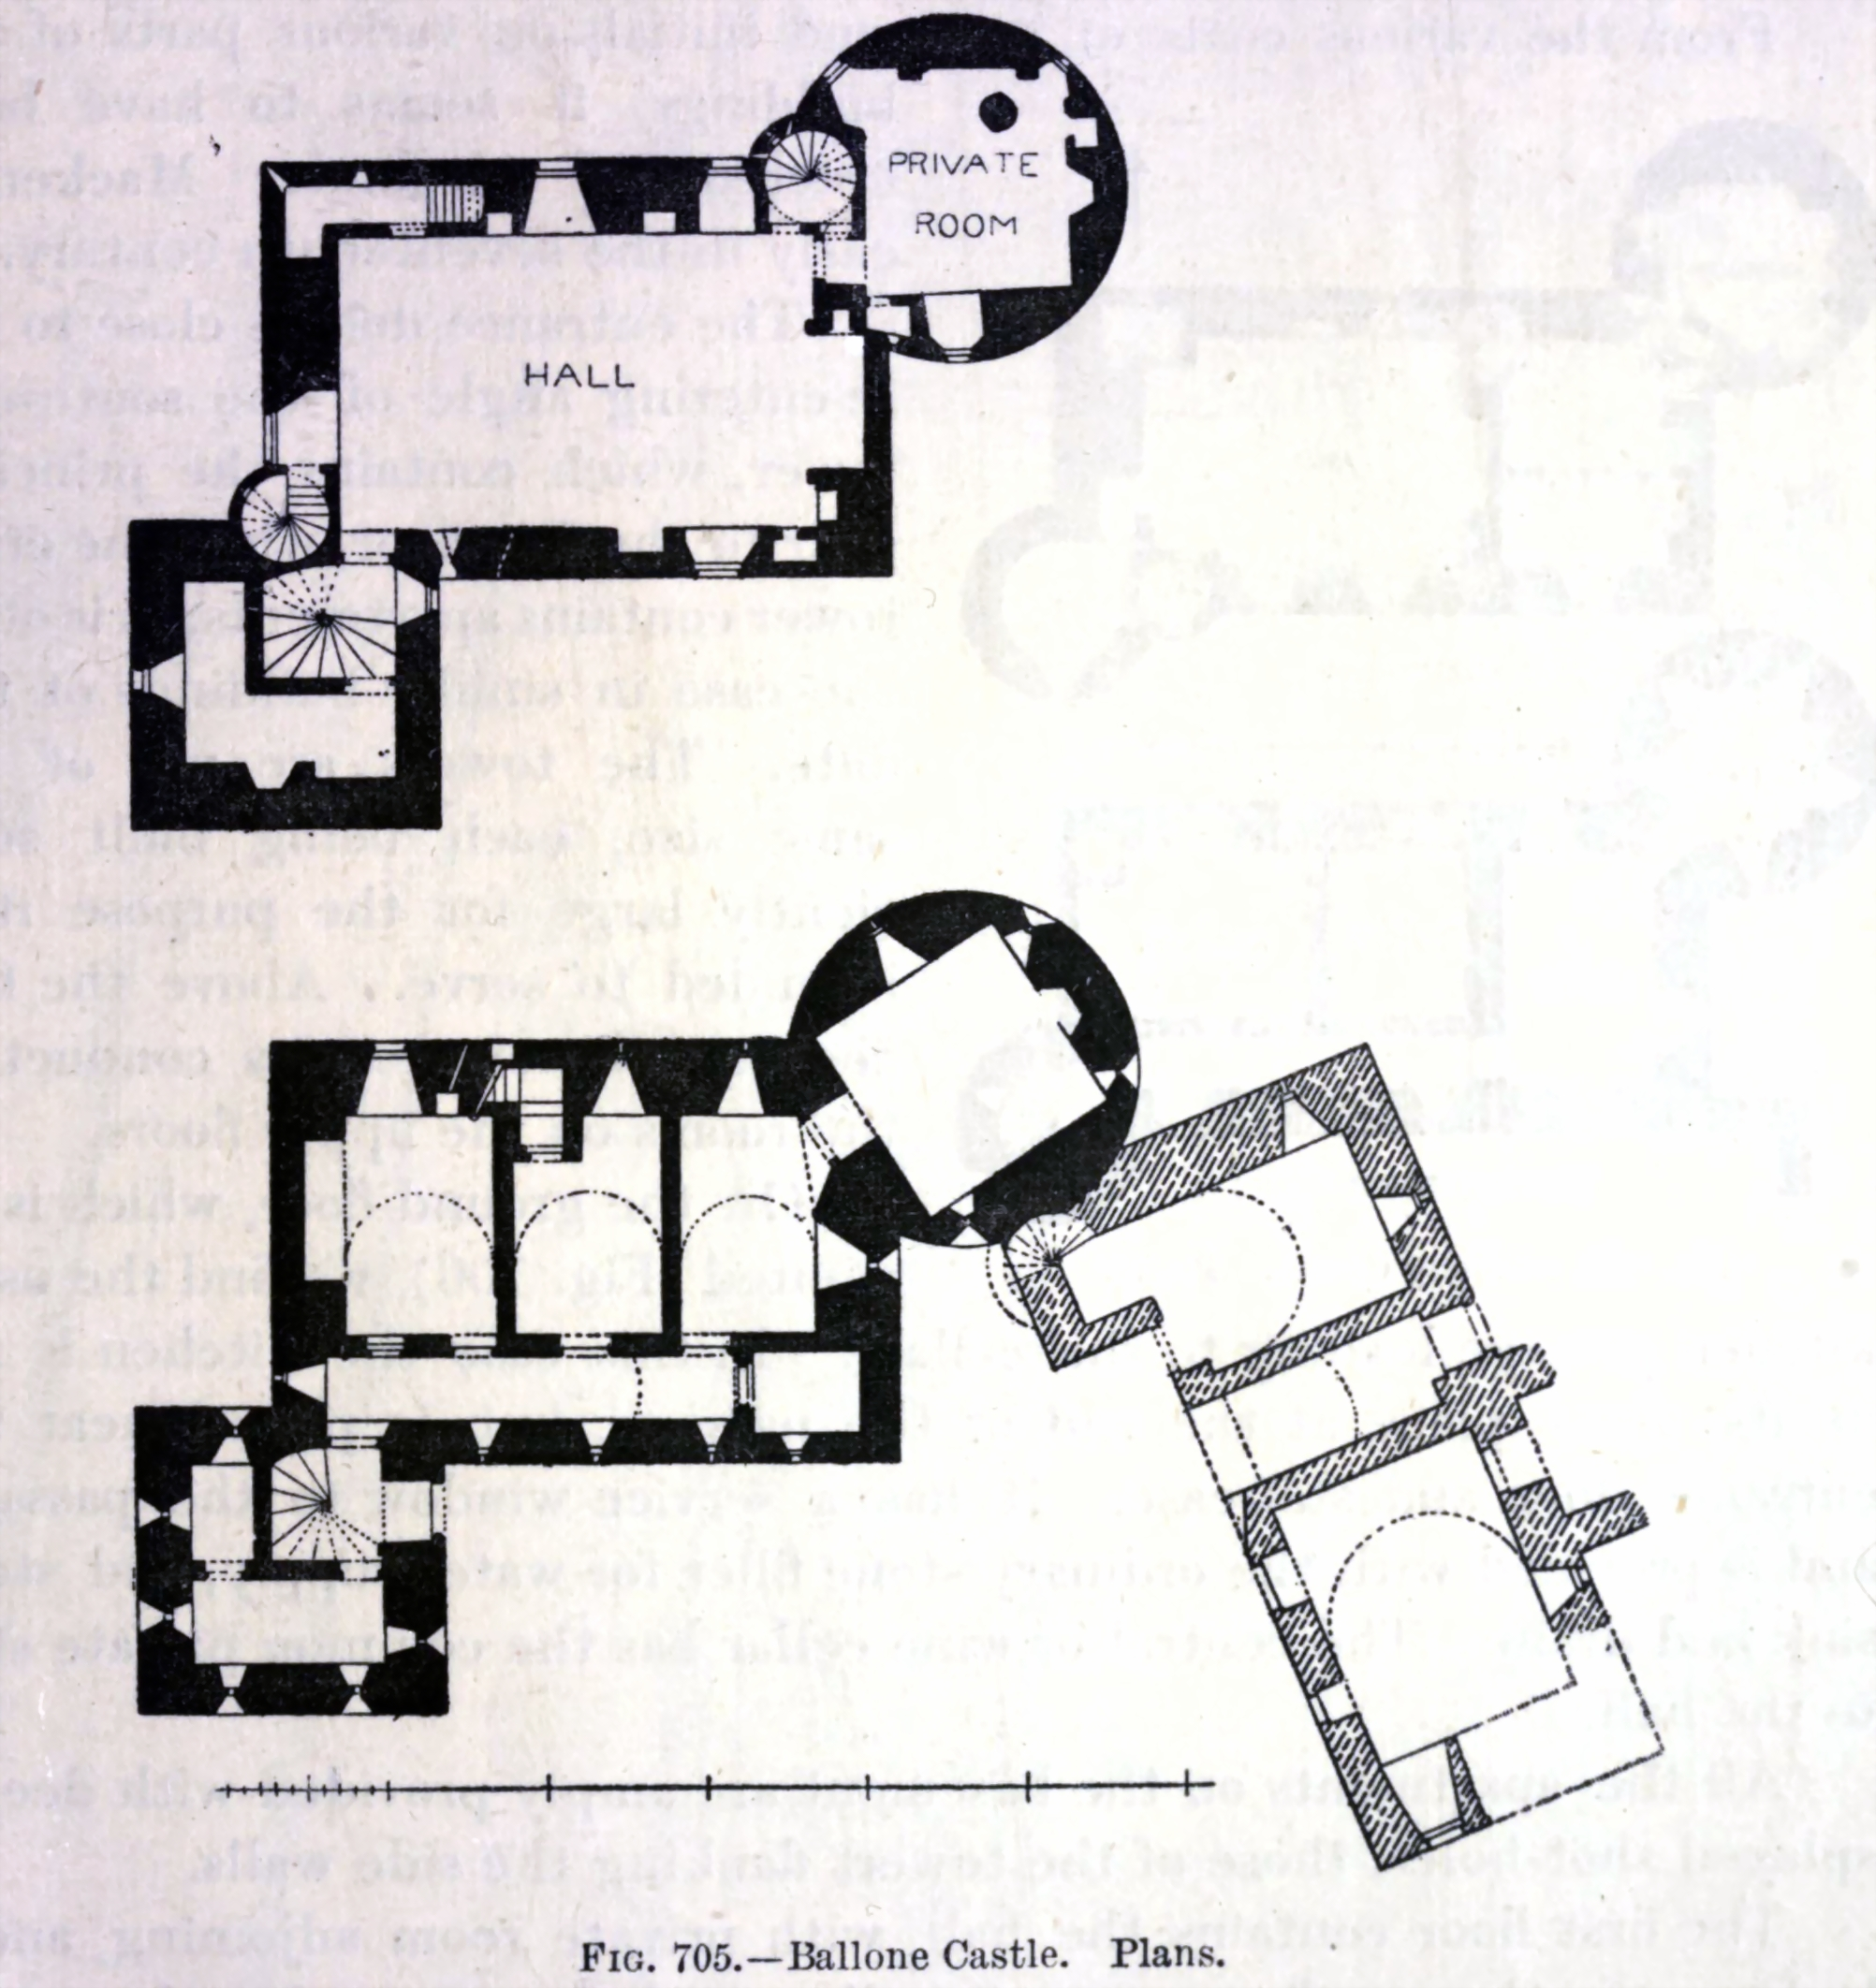 file ballone castle plans jpg wikimedia commons